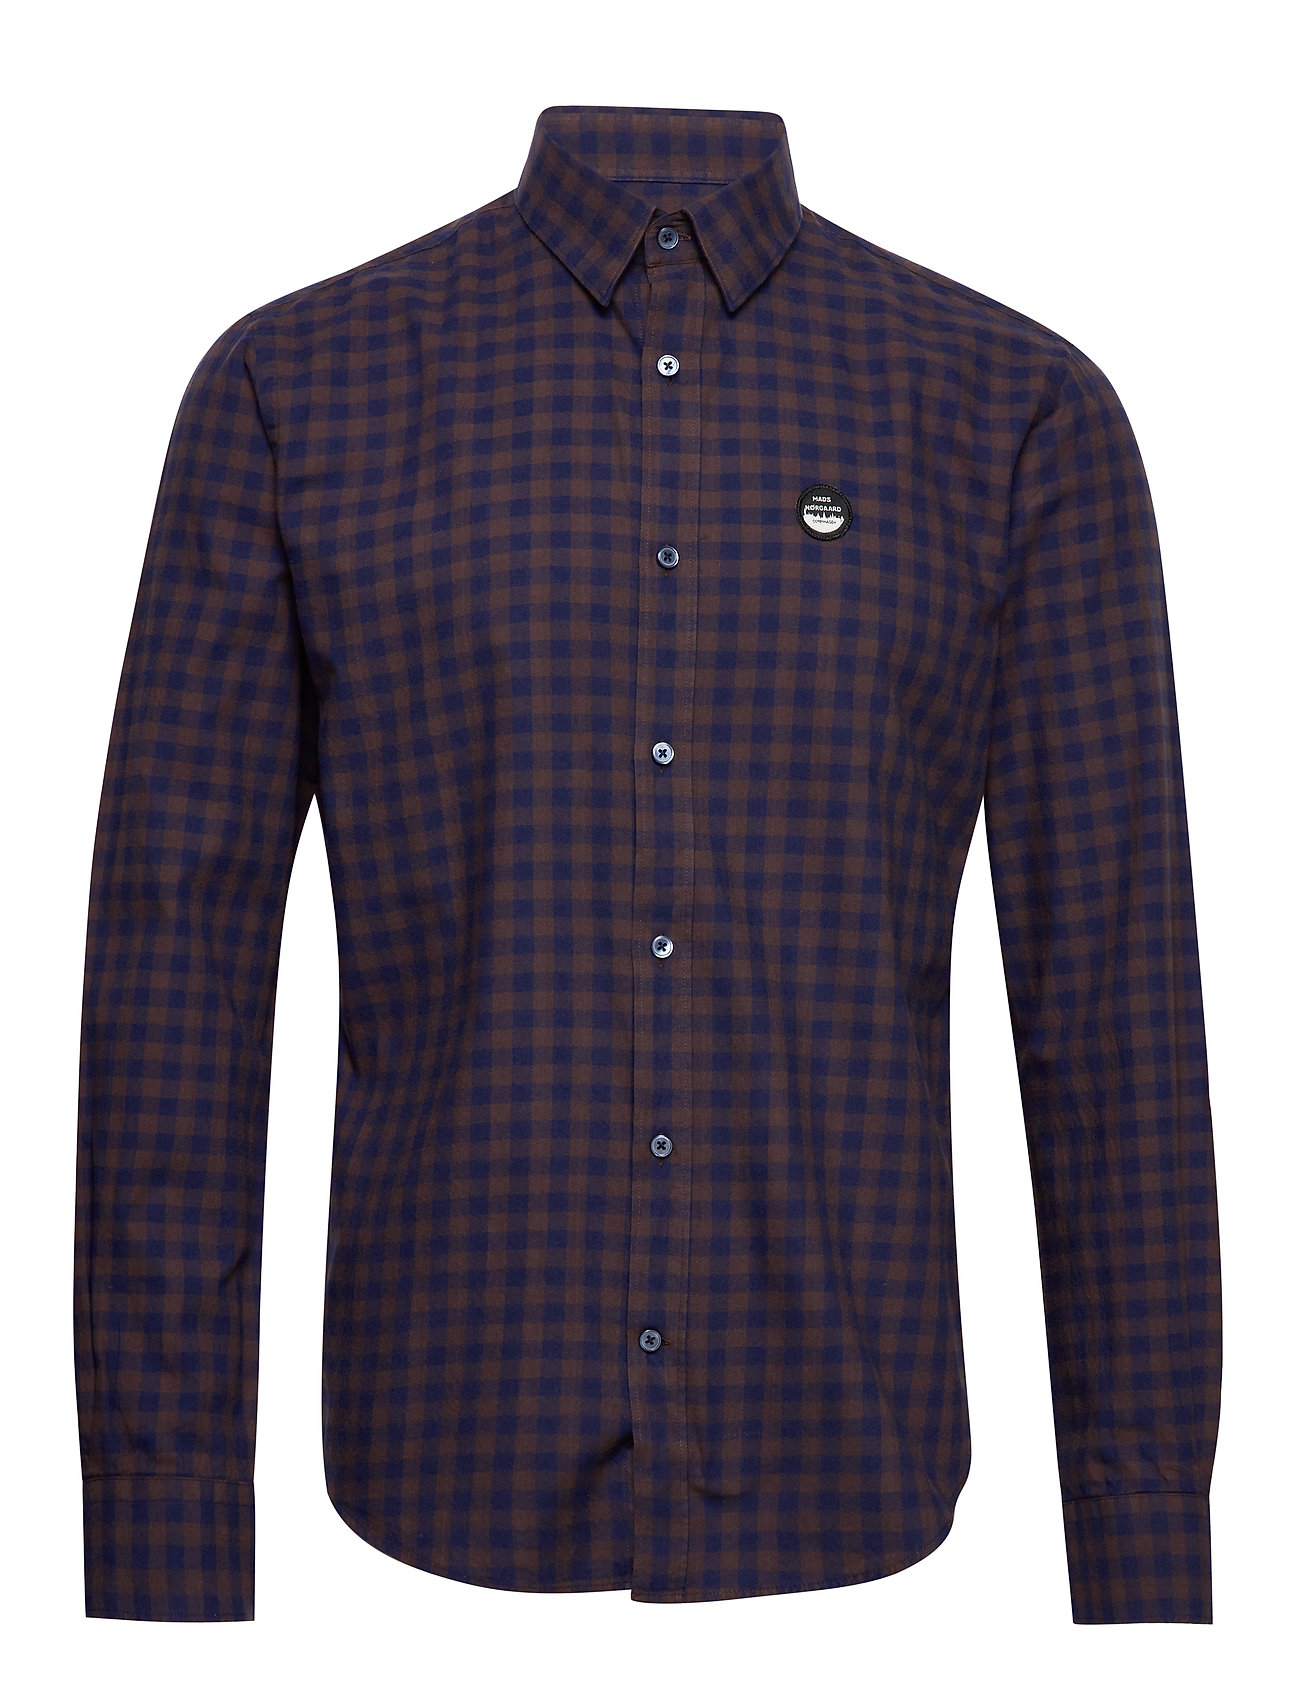 Mads Nørgaard Brushed Twill Sumo - NAVY/BROWN CHECK